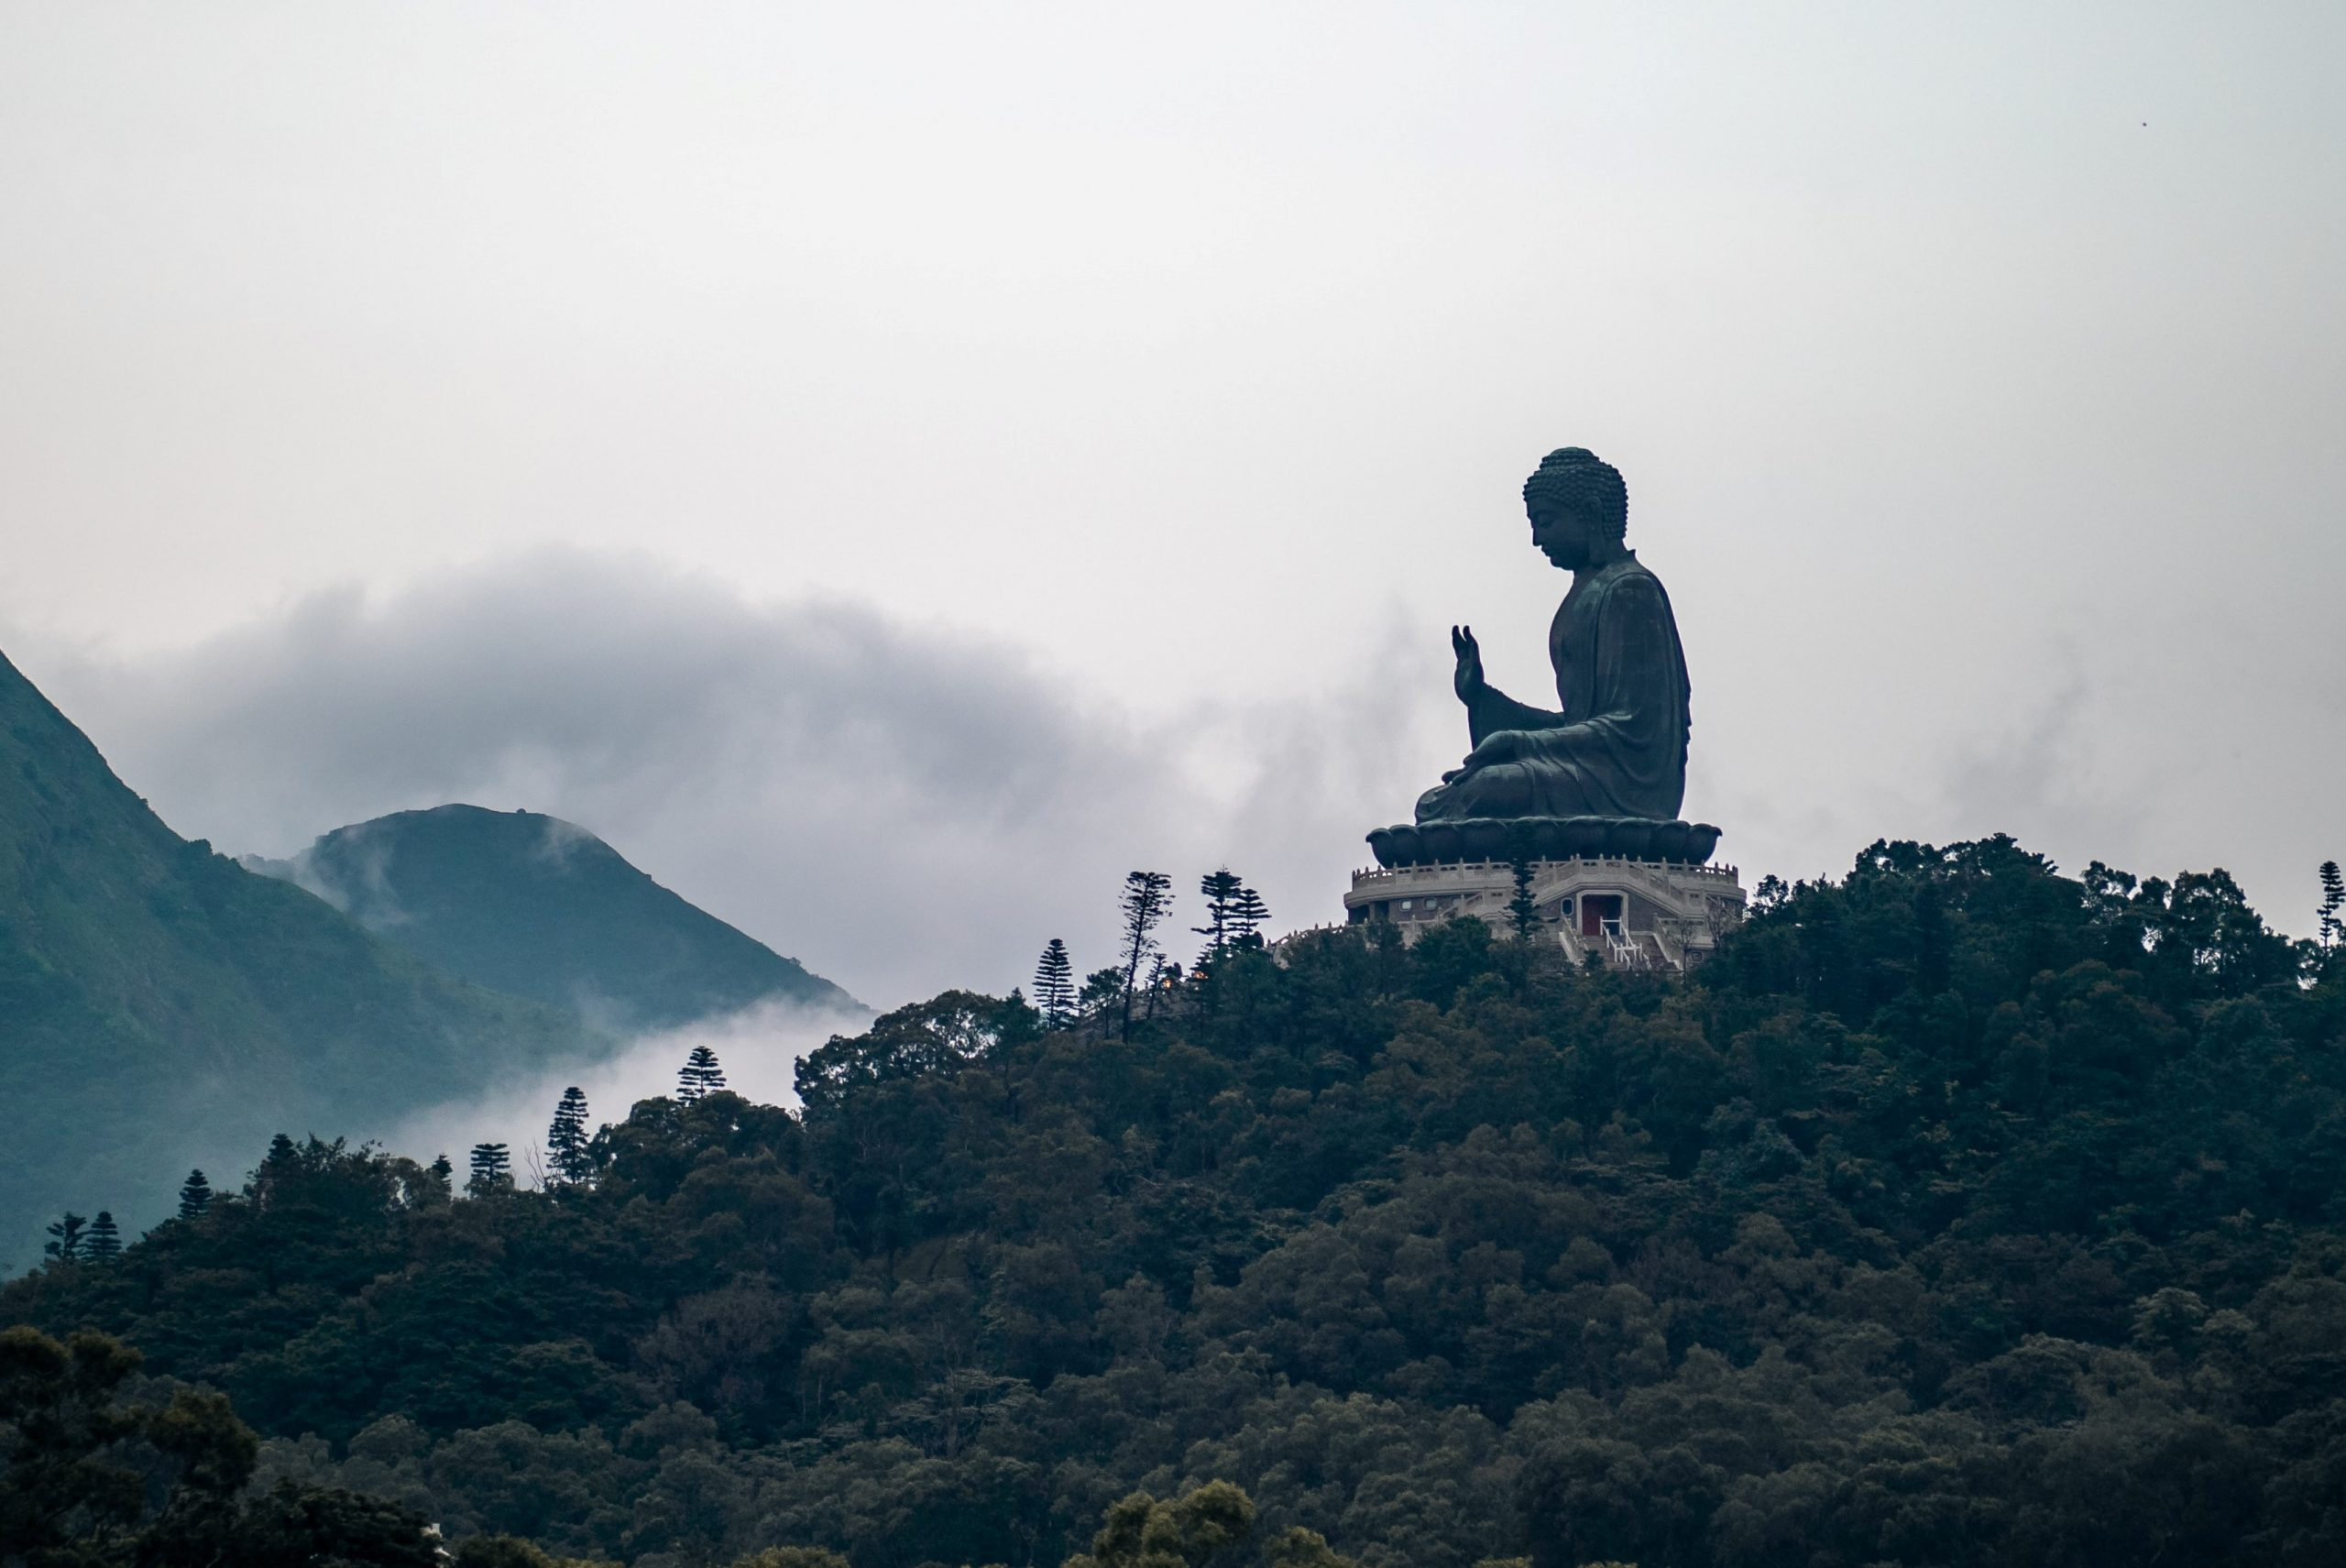 A Creative Response to Uncertain Times - Introduction to Buddhism and Meditation Course